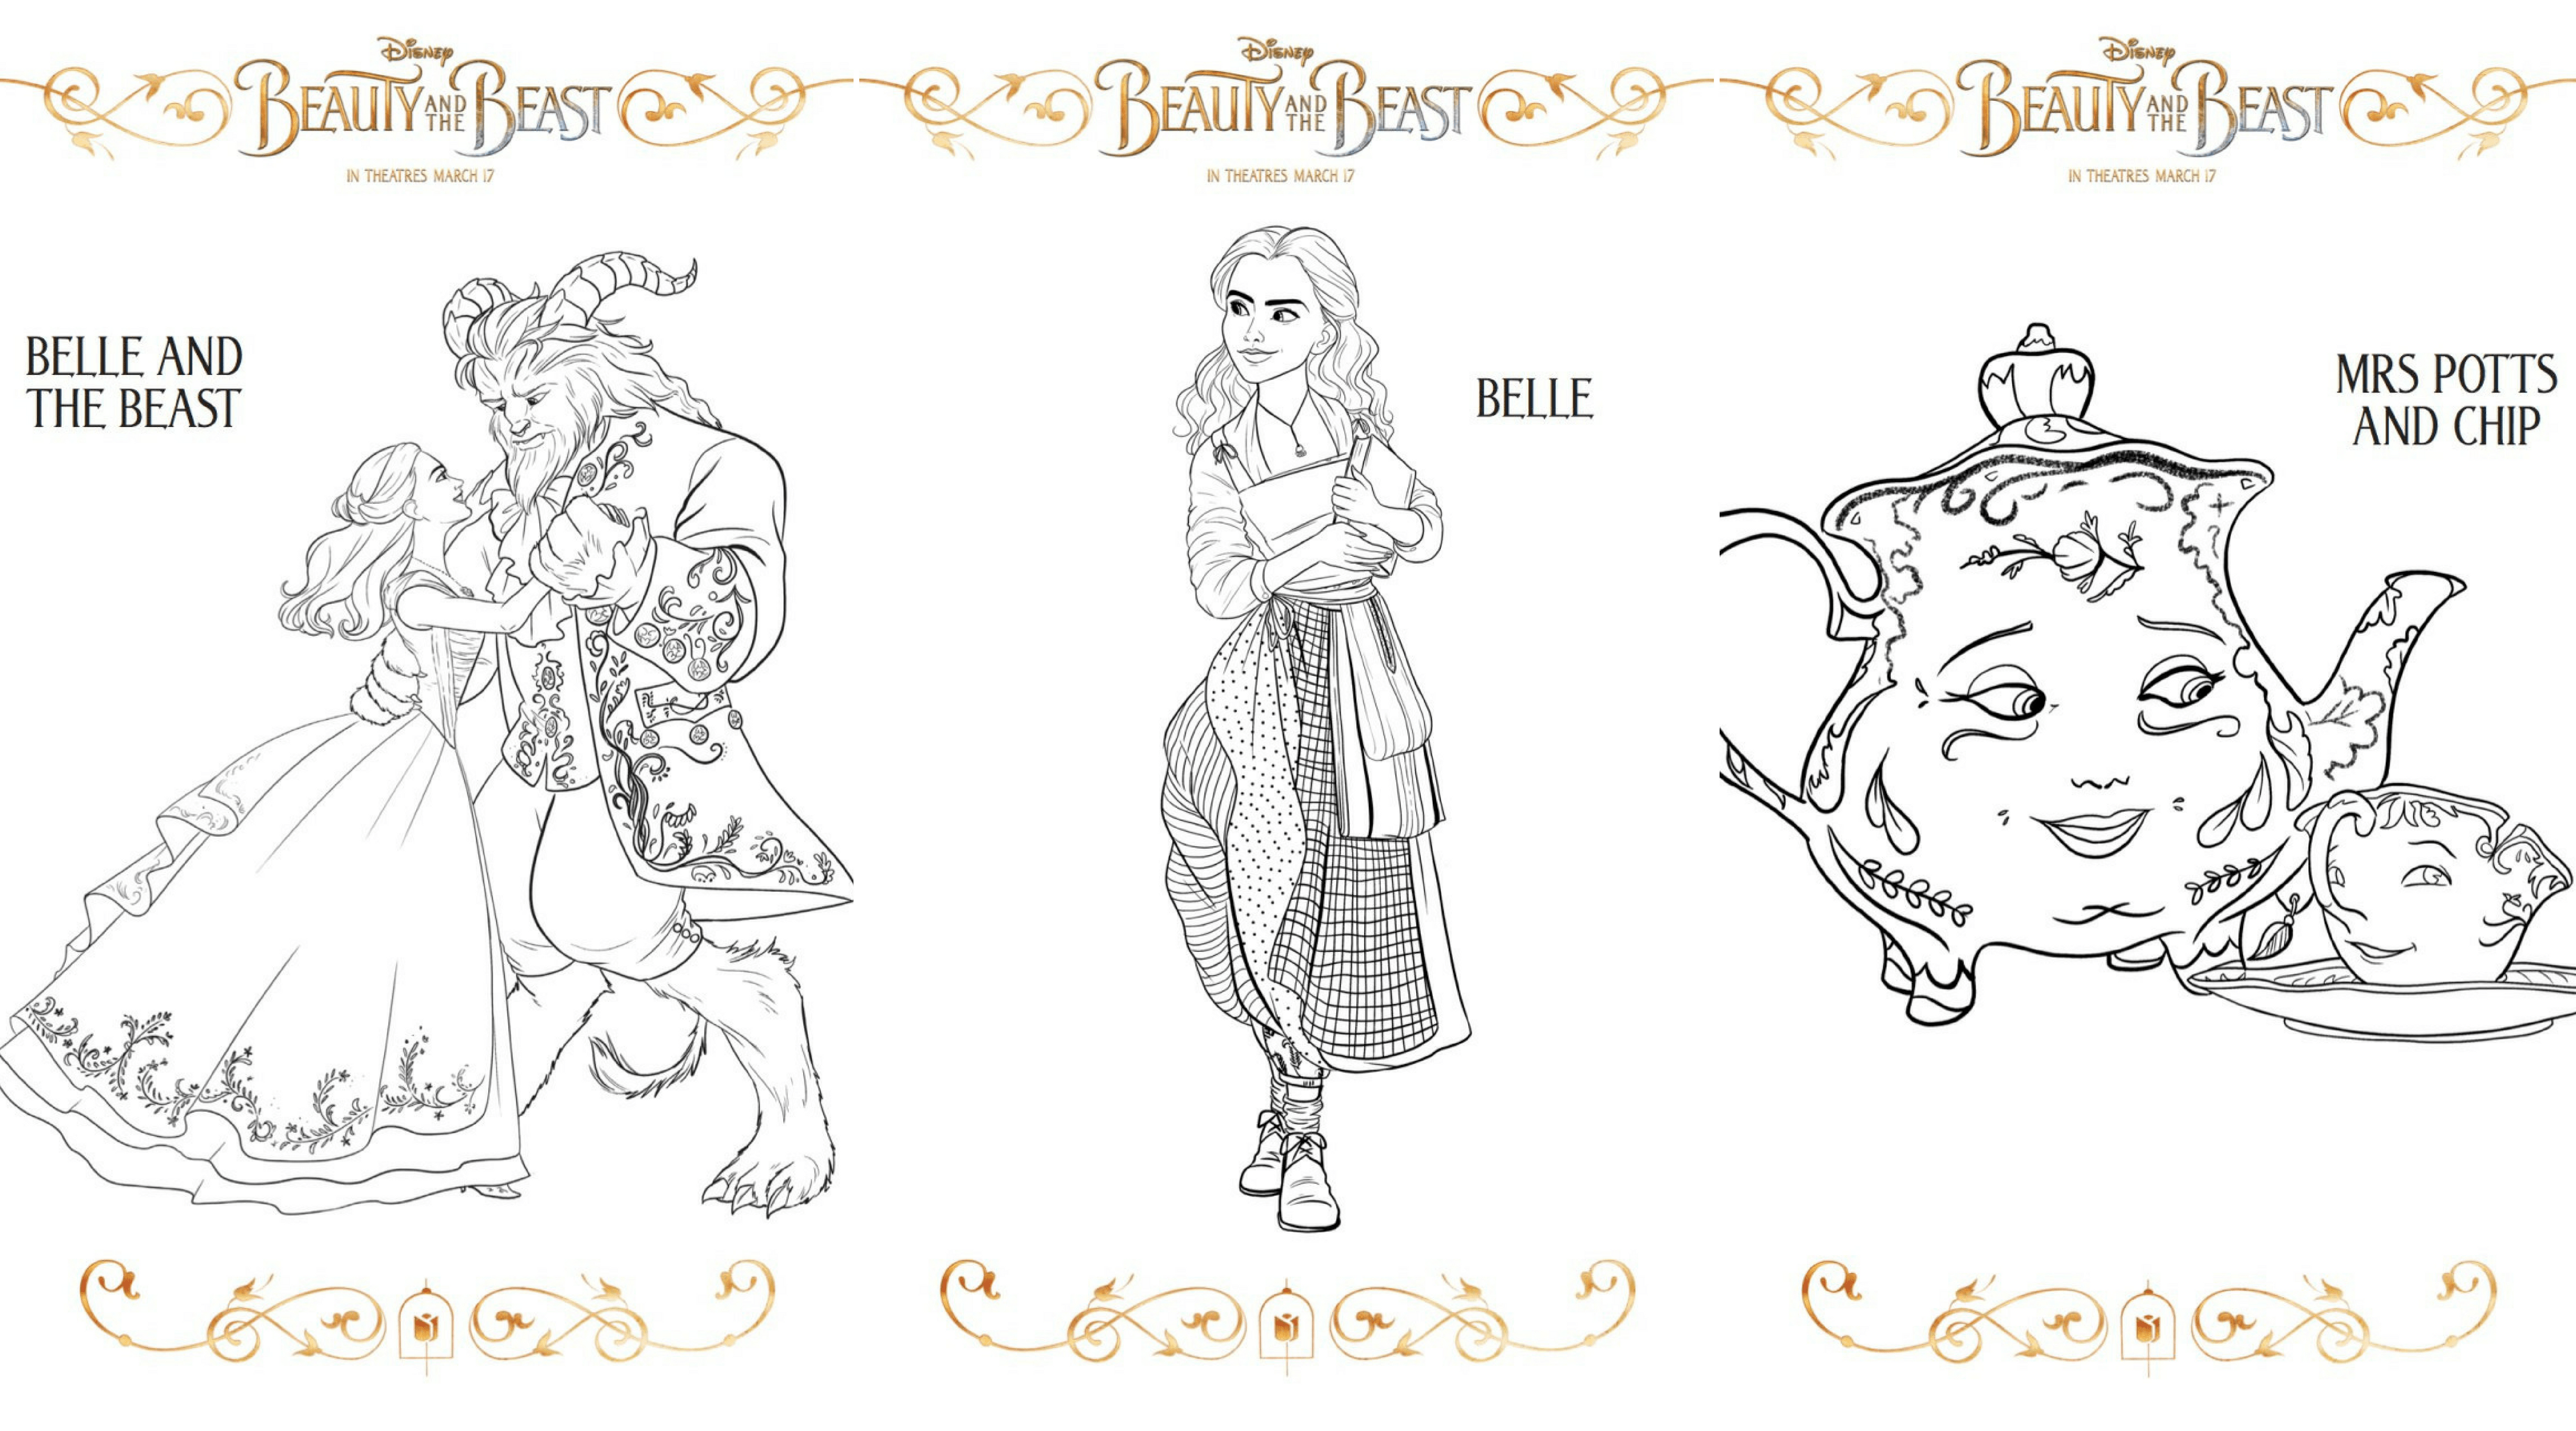 picture about Beauty and the Beast Printable Coloring Pages identified as 3 Clean Natural beauty and the Beast Printable Coloring Sheets